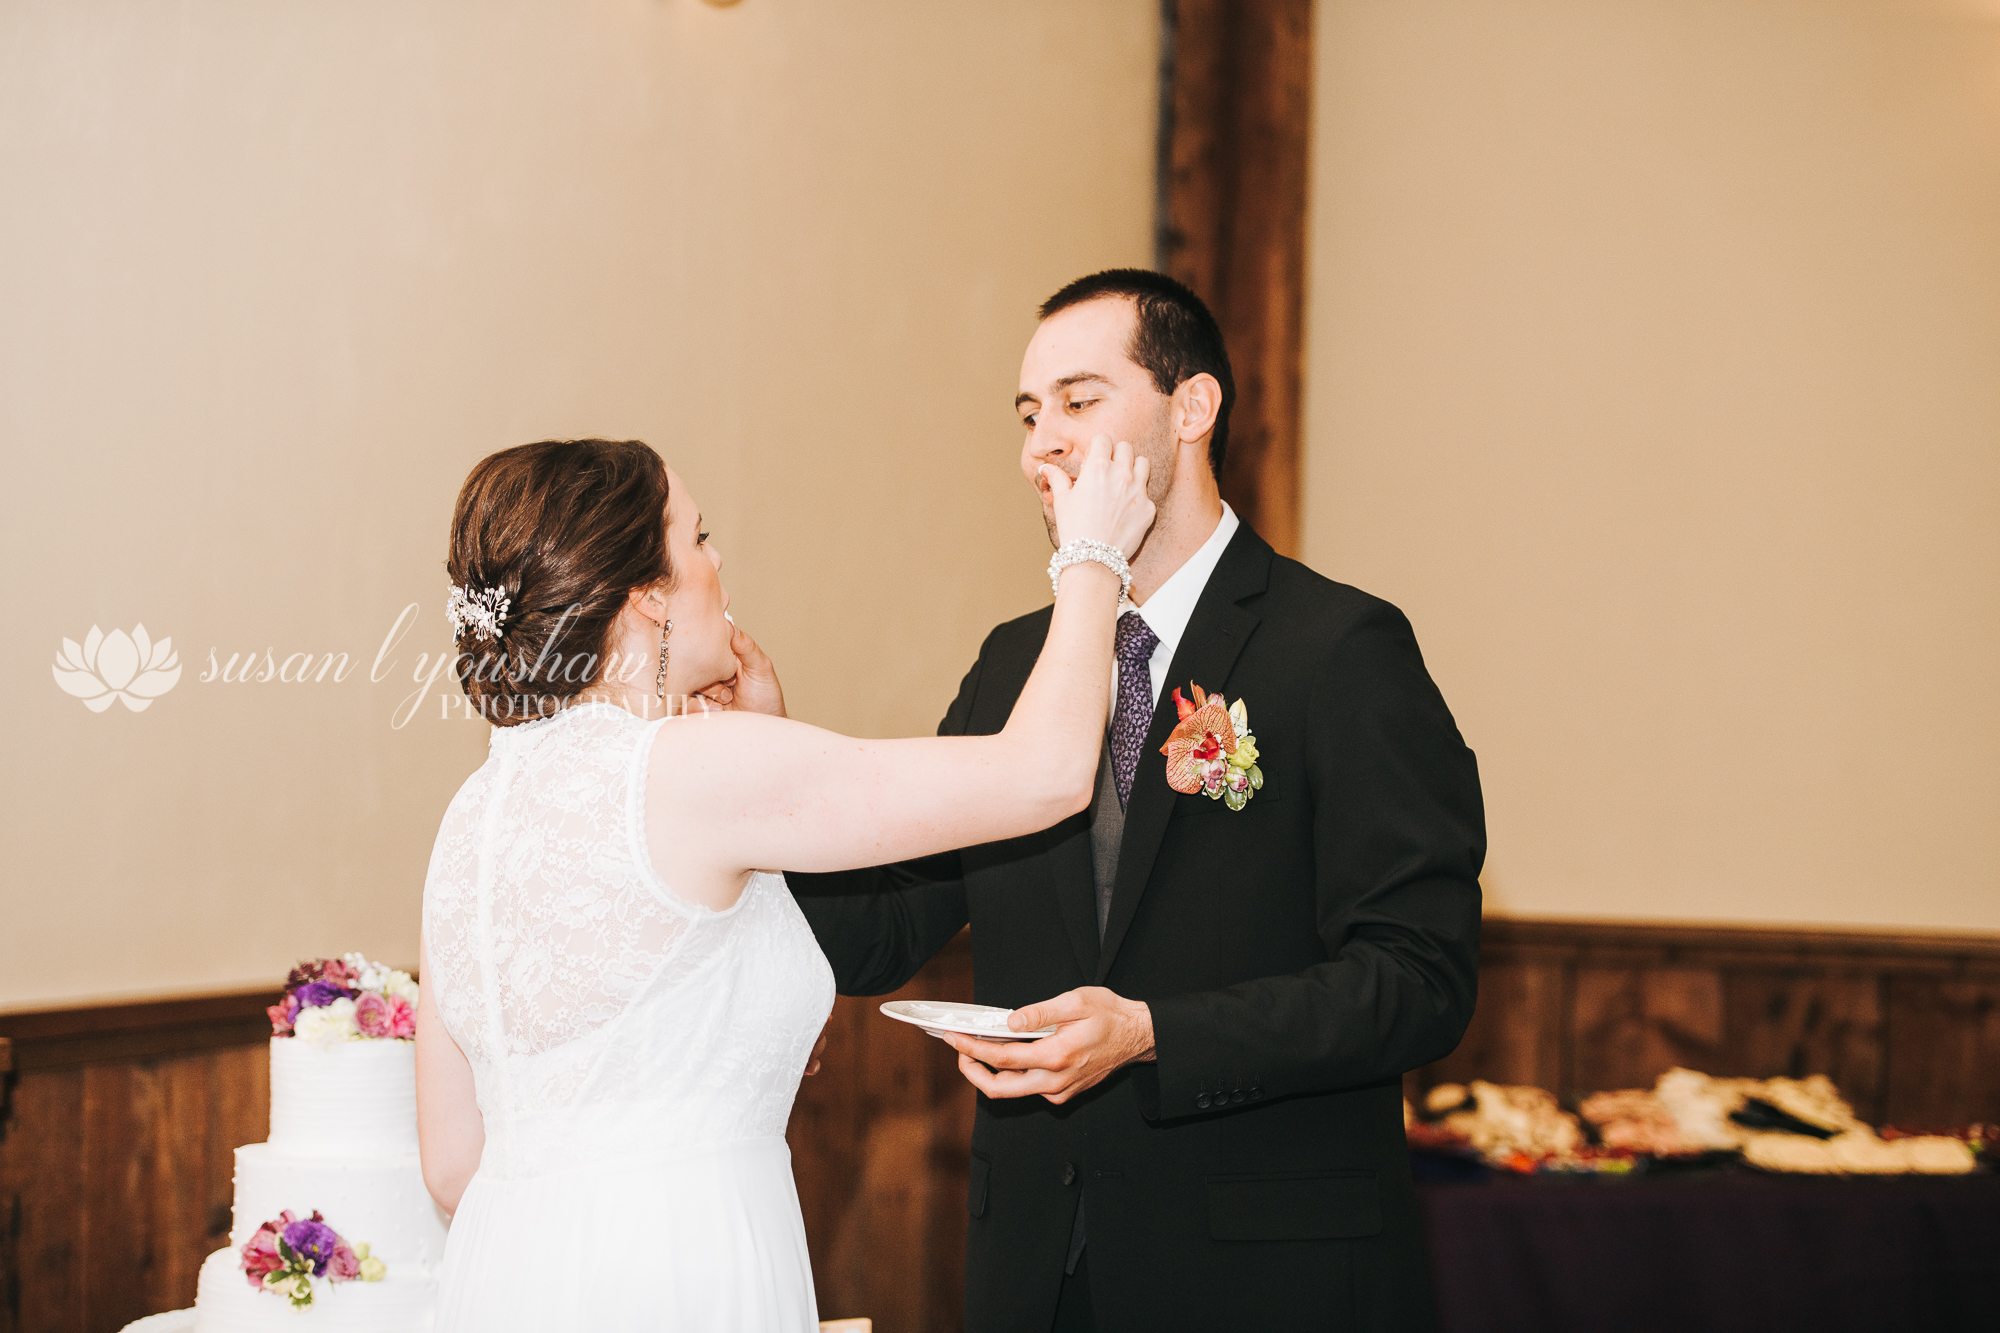 Adena and  Erik Wedding 05-17-2019 SLY Photography-103.jpg